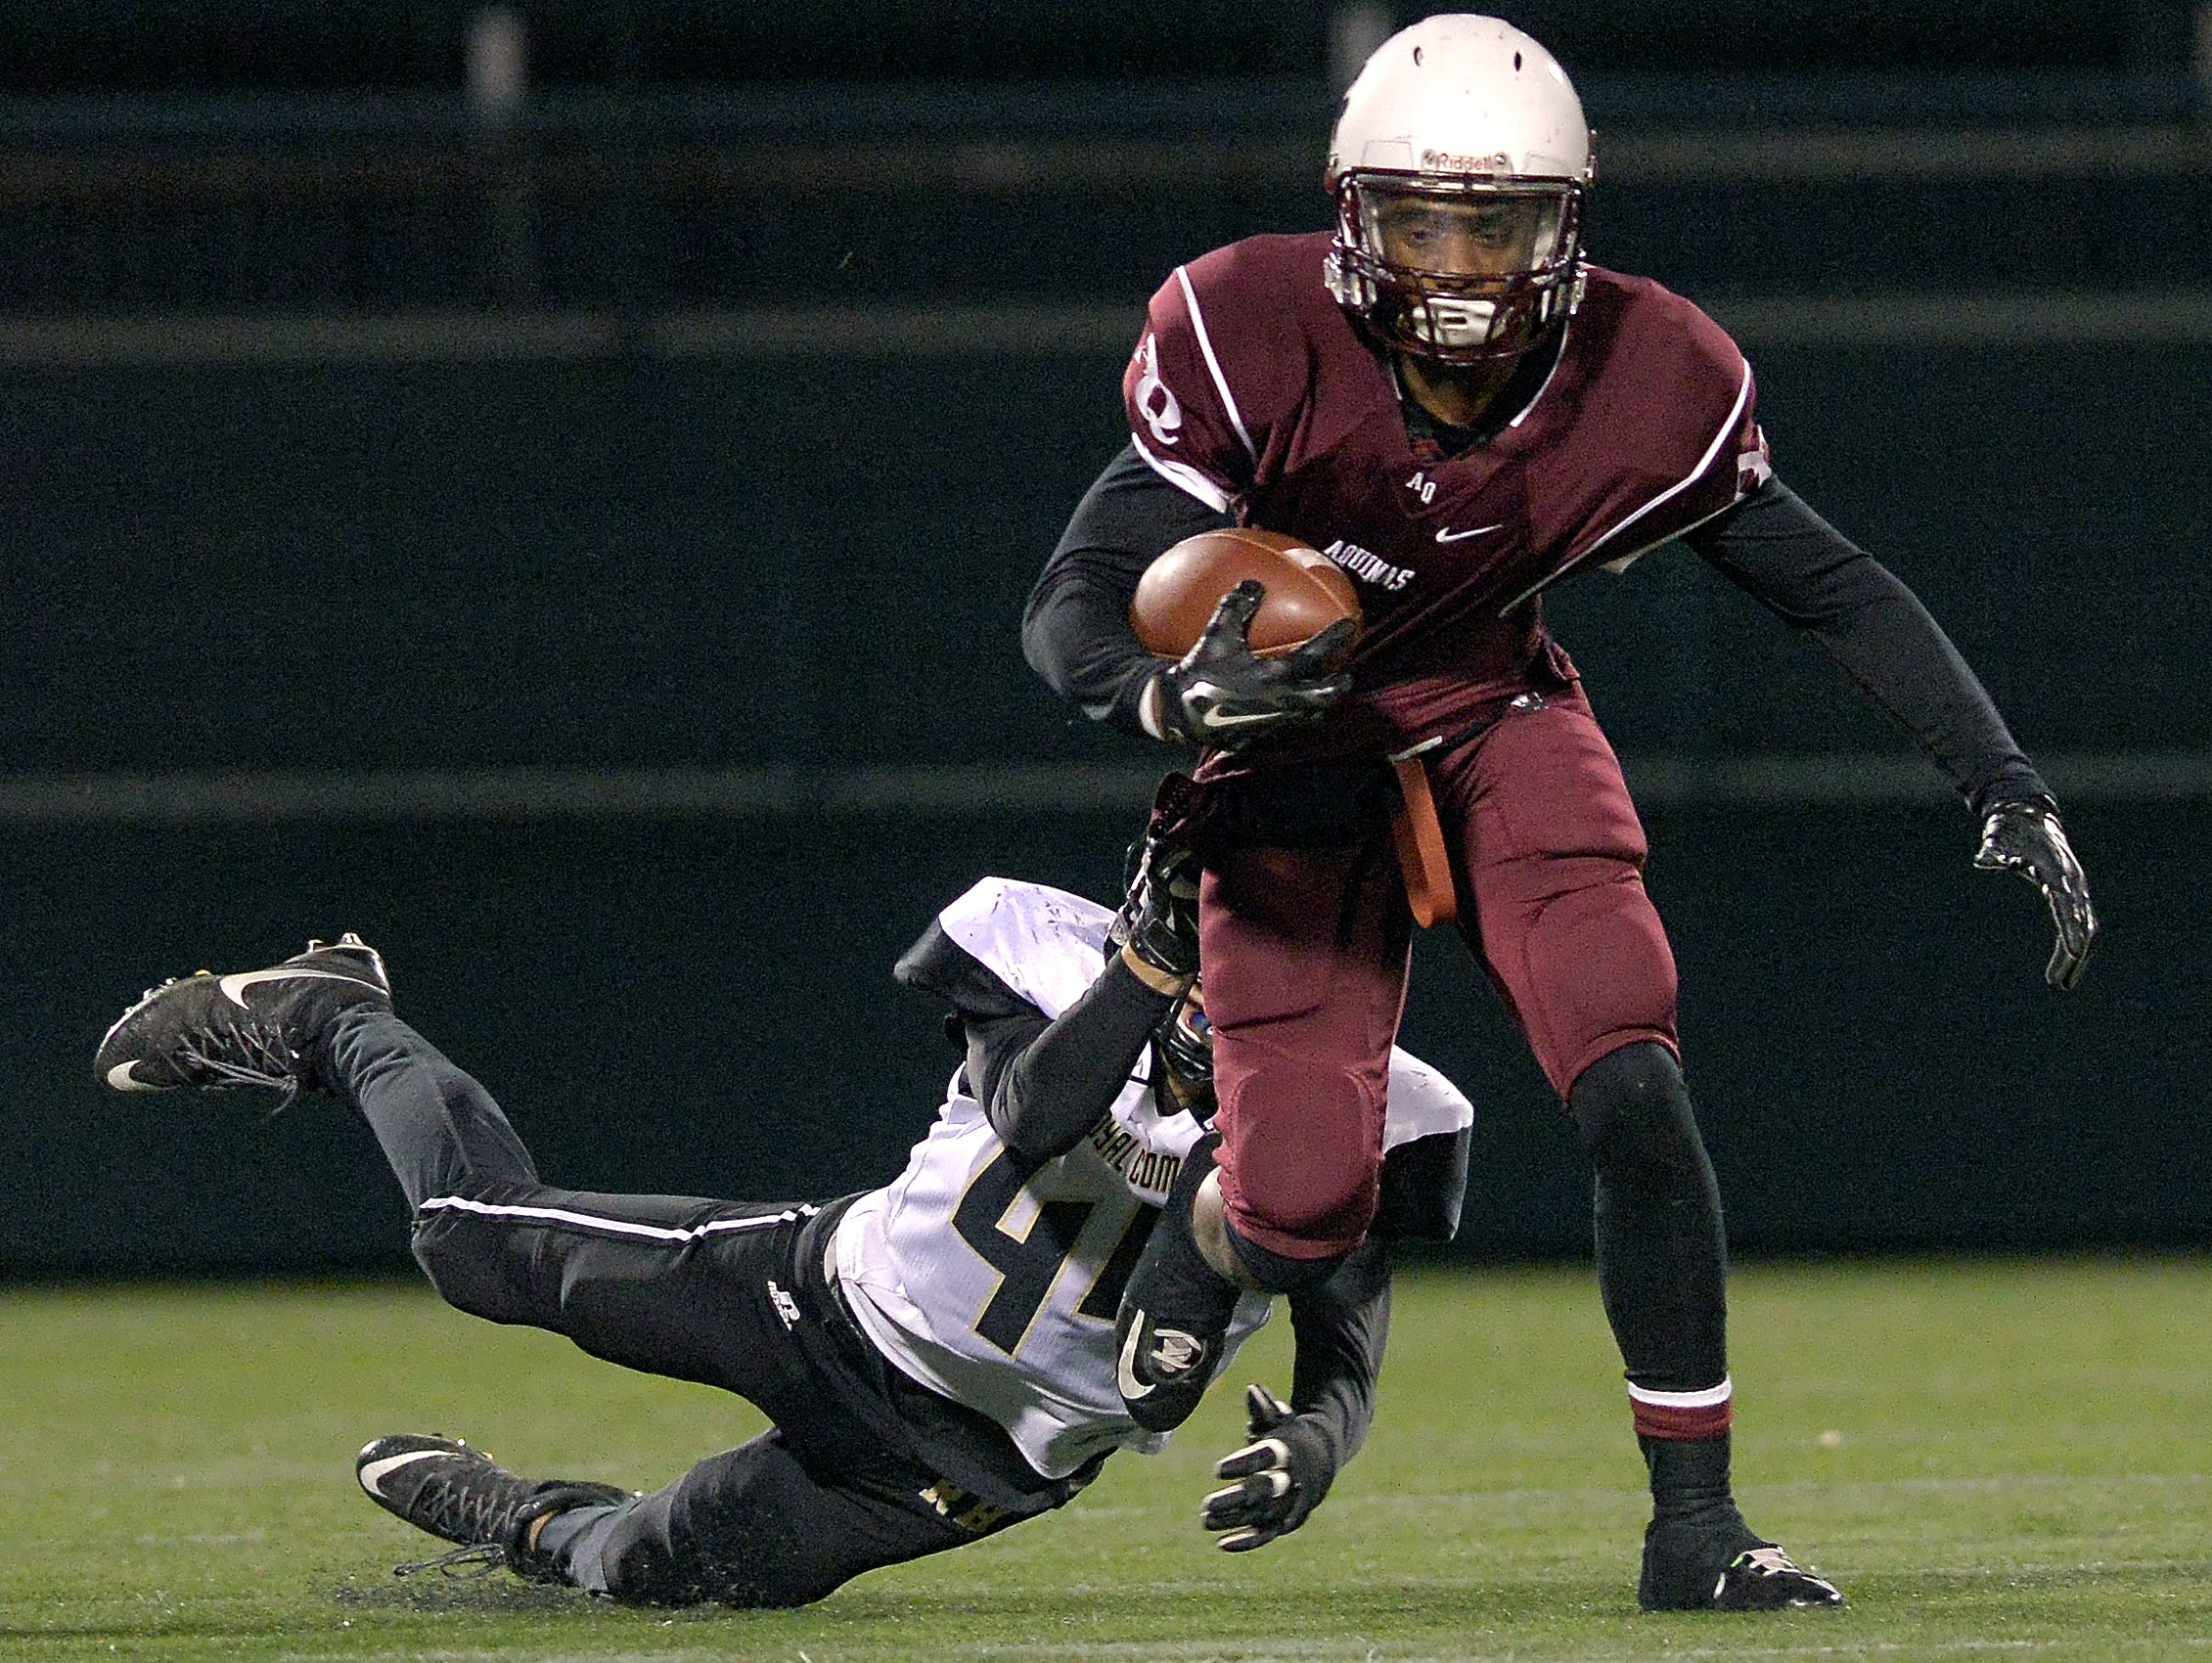 Aquinas earnest edwards right tries to break the grasp of rush